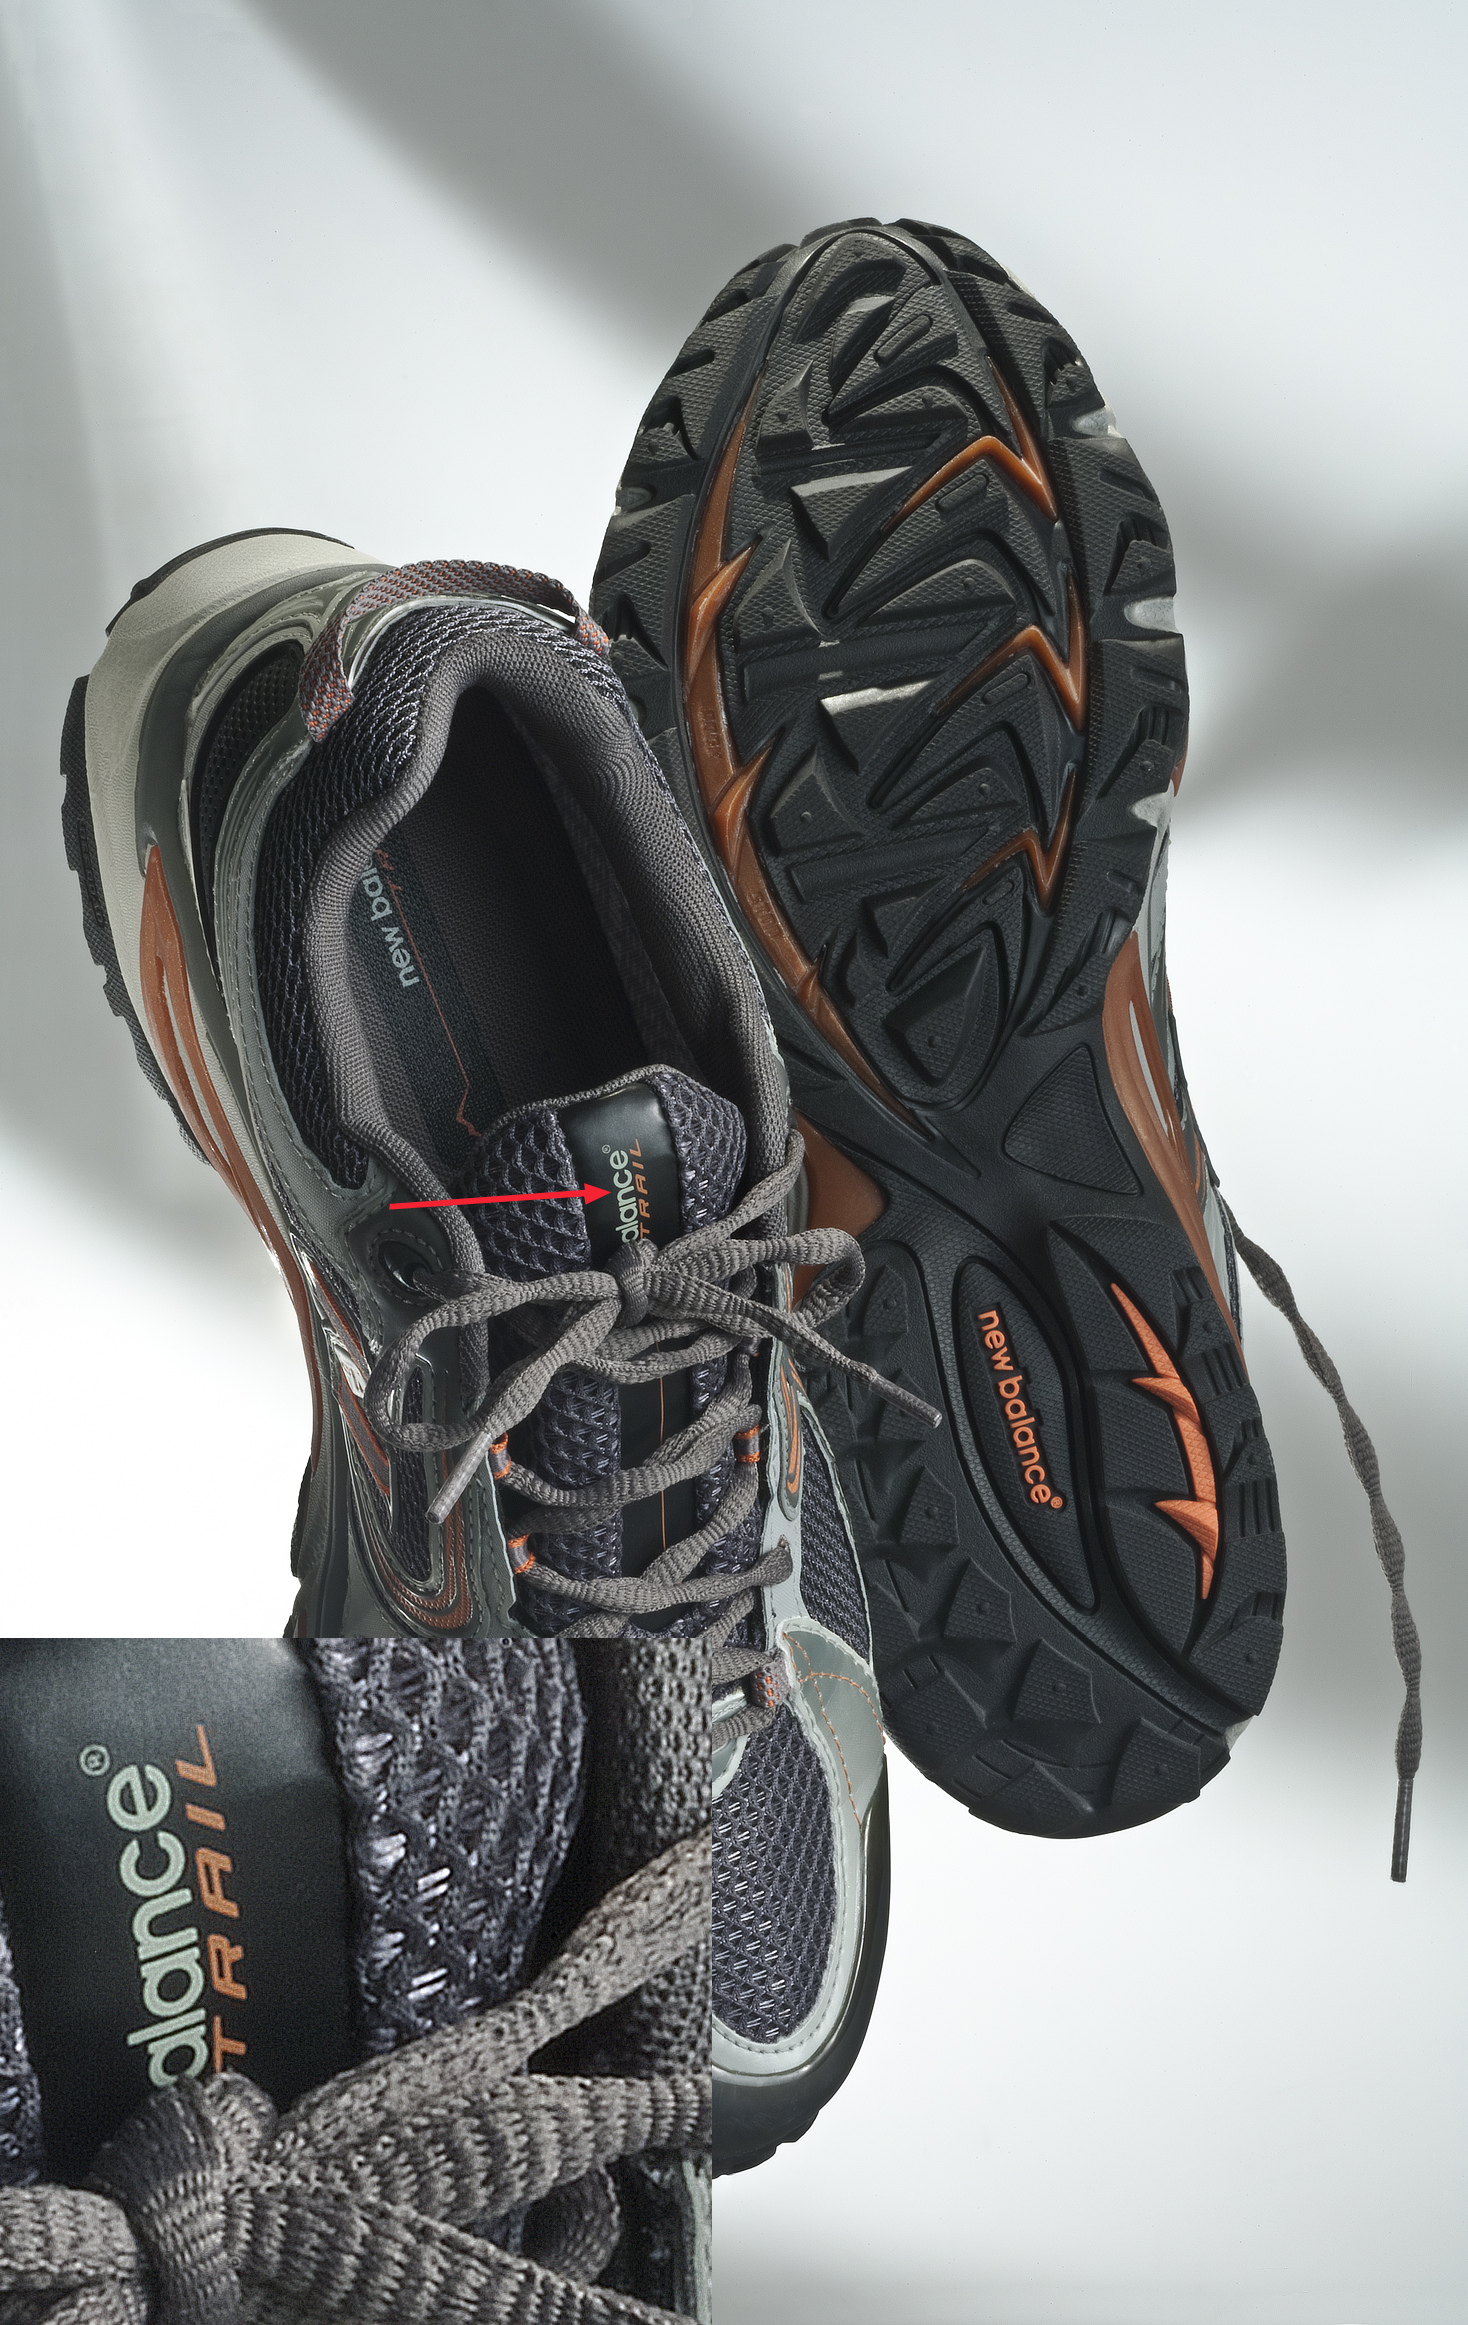 Photo of sneakers taken with a Canon 5DII on a MultiStitch